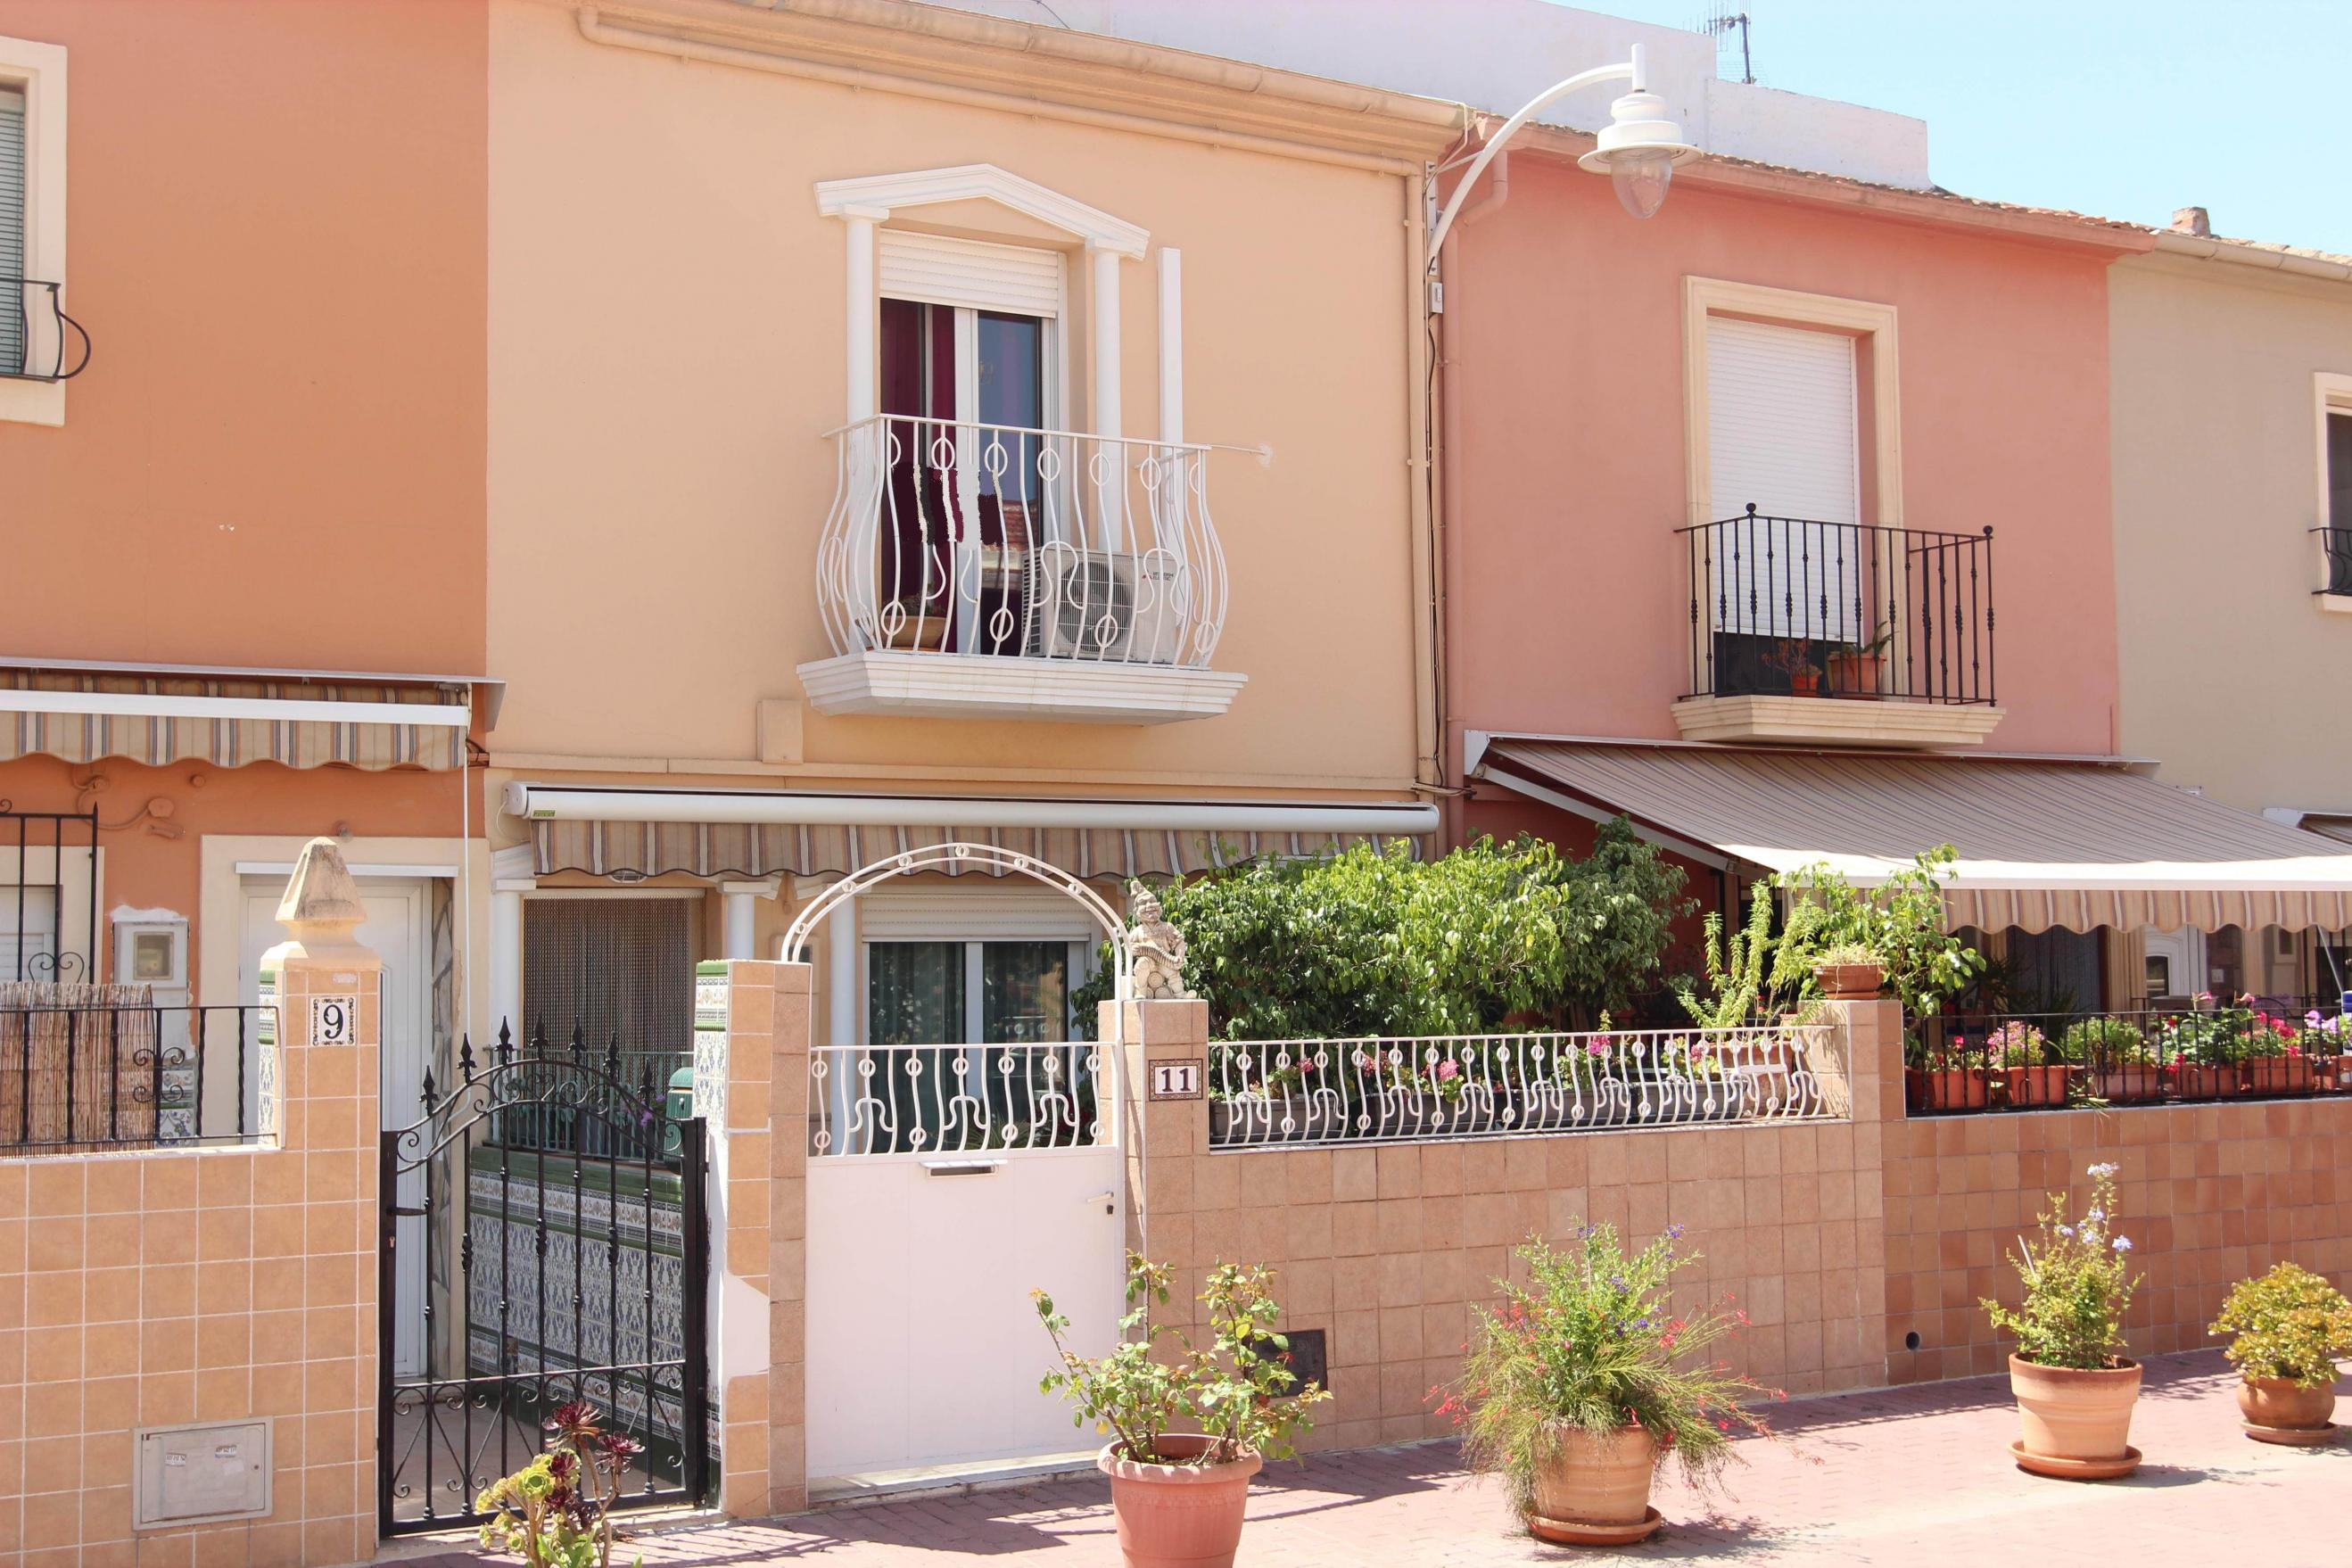 4 Bedroom Town house in Javea